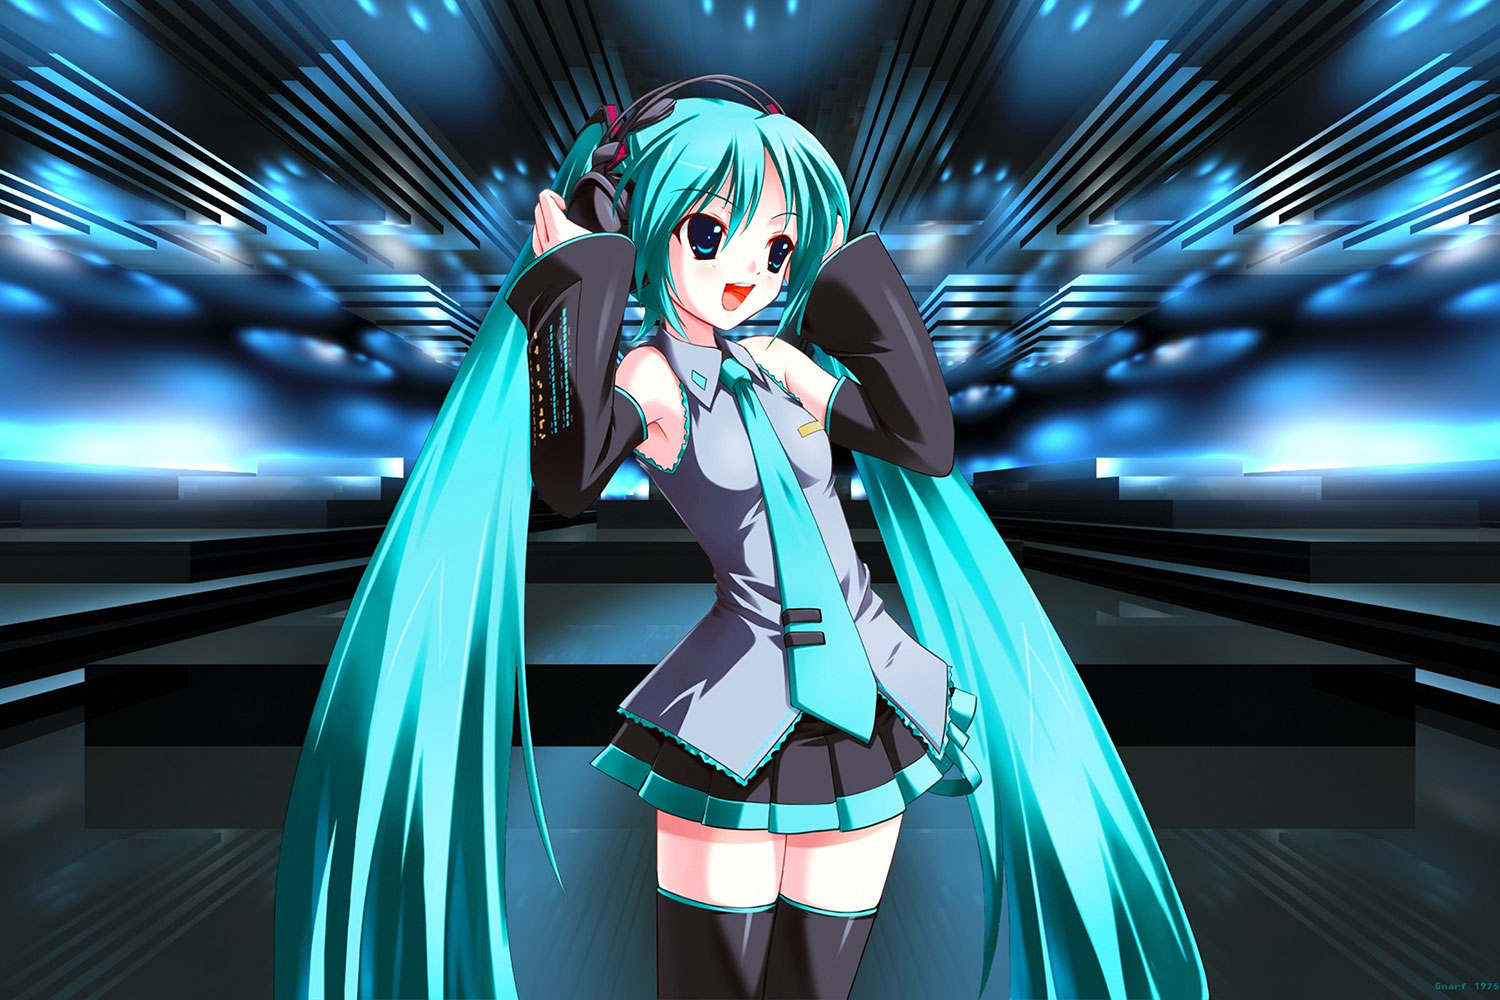 Fall Anime Wallpaper Vocaloid How A Vocaloid Singer Made Me Fall In Love With Music